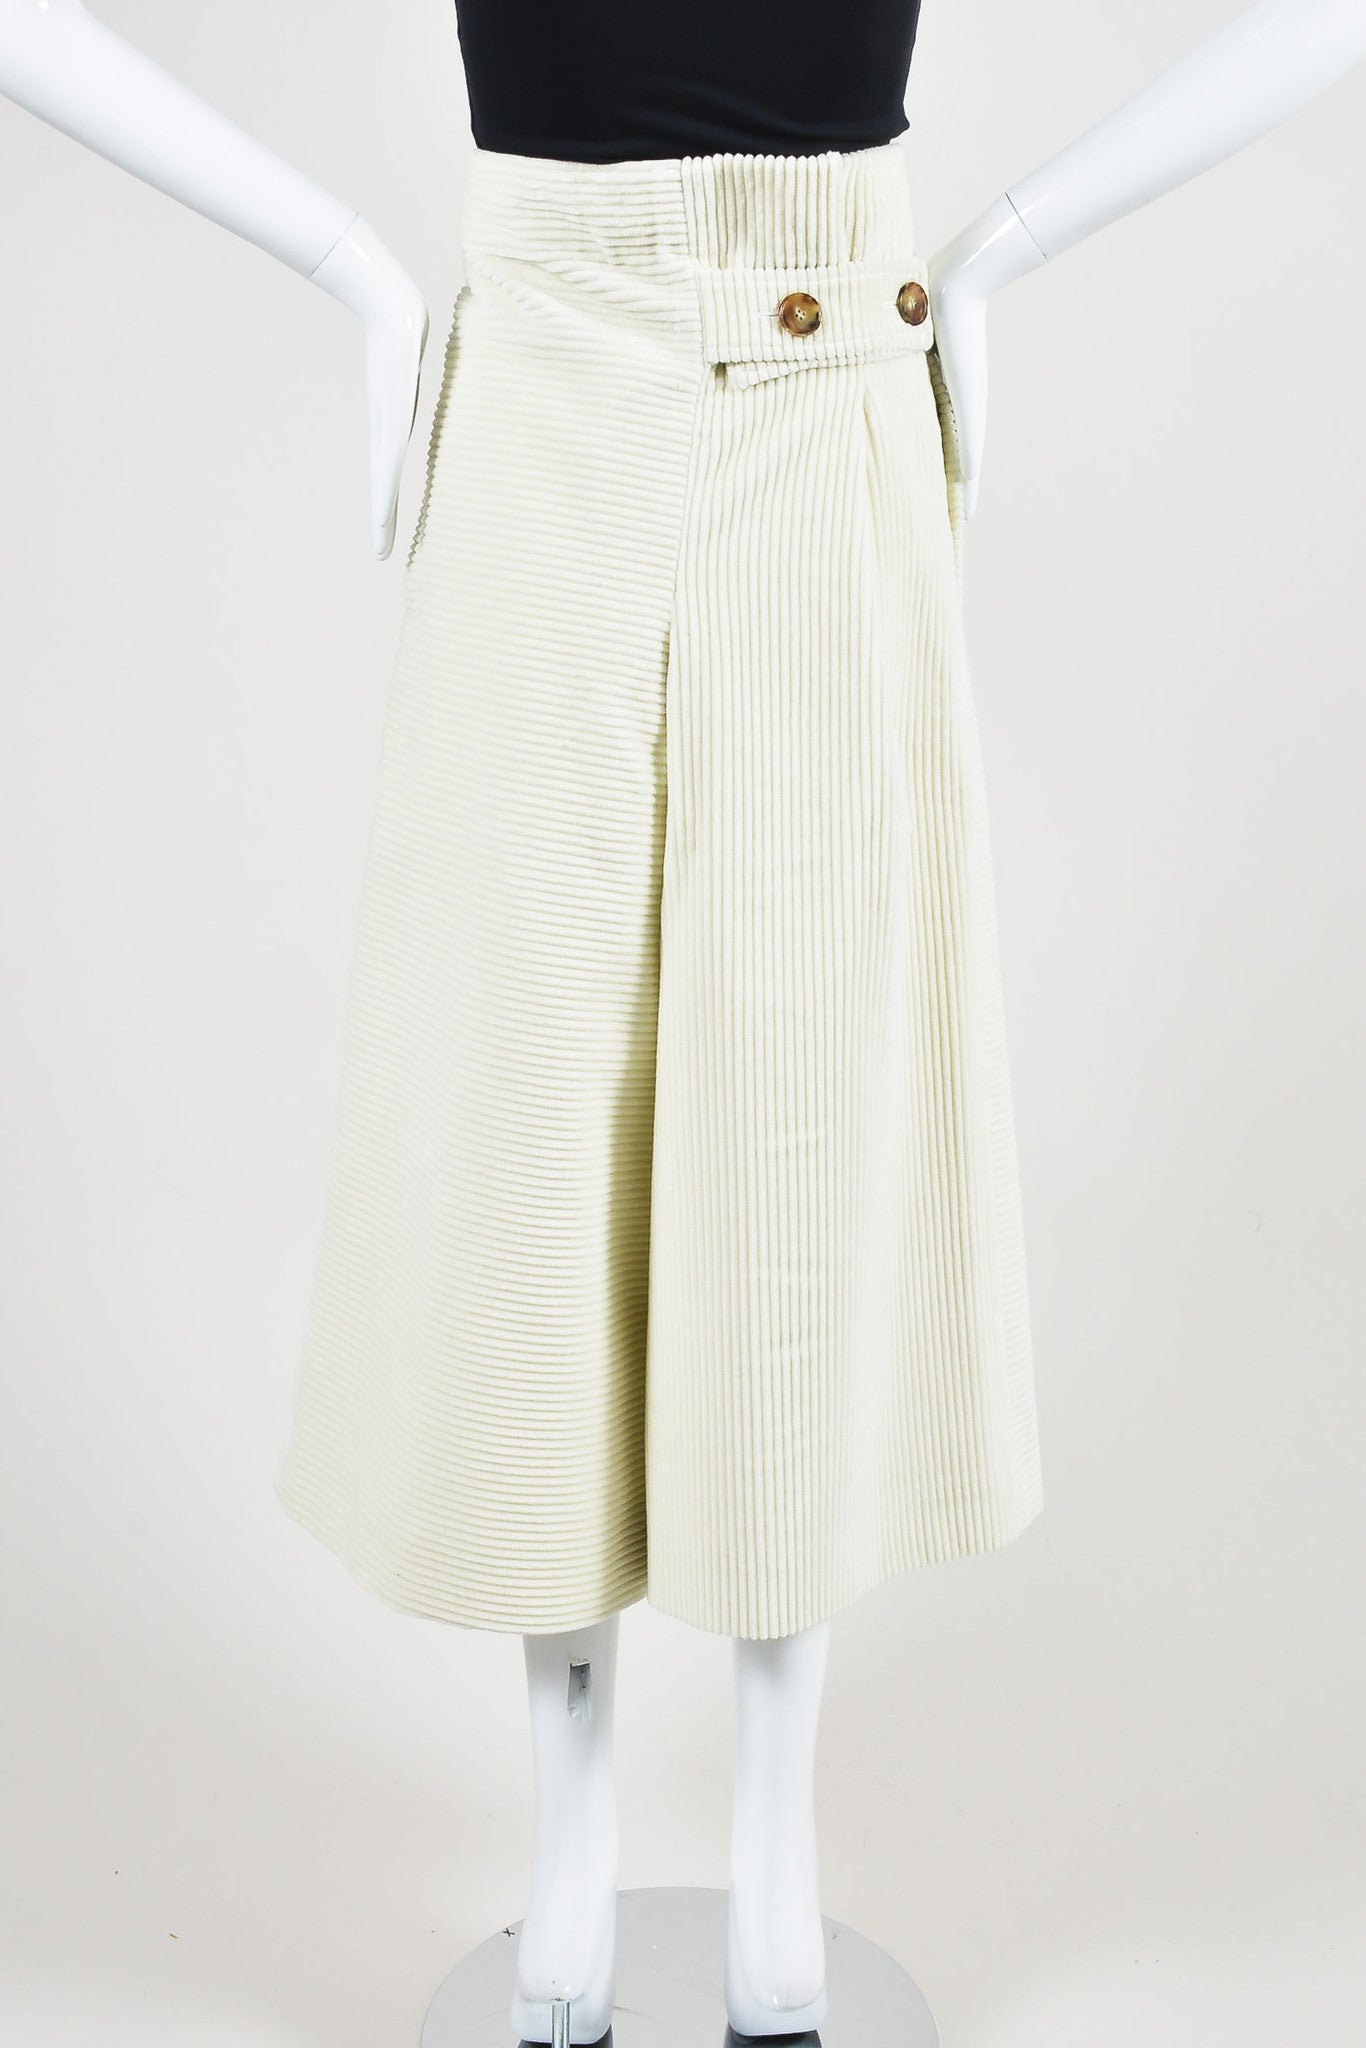 Victoria Beckham Cream Corduroy Textured Culottes Backview